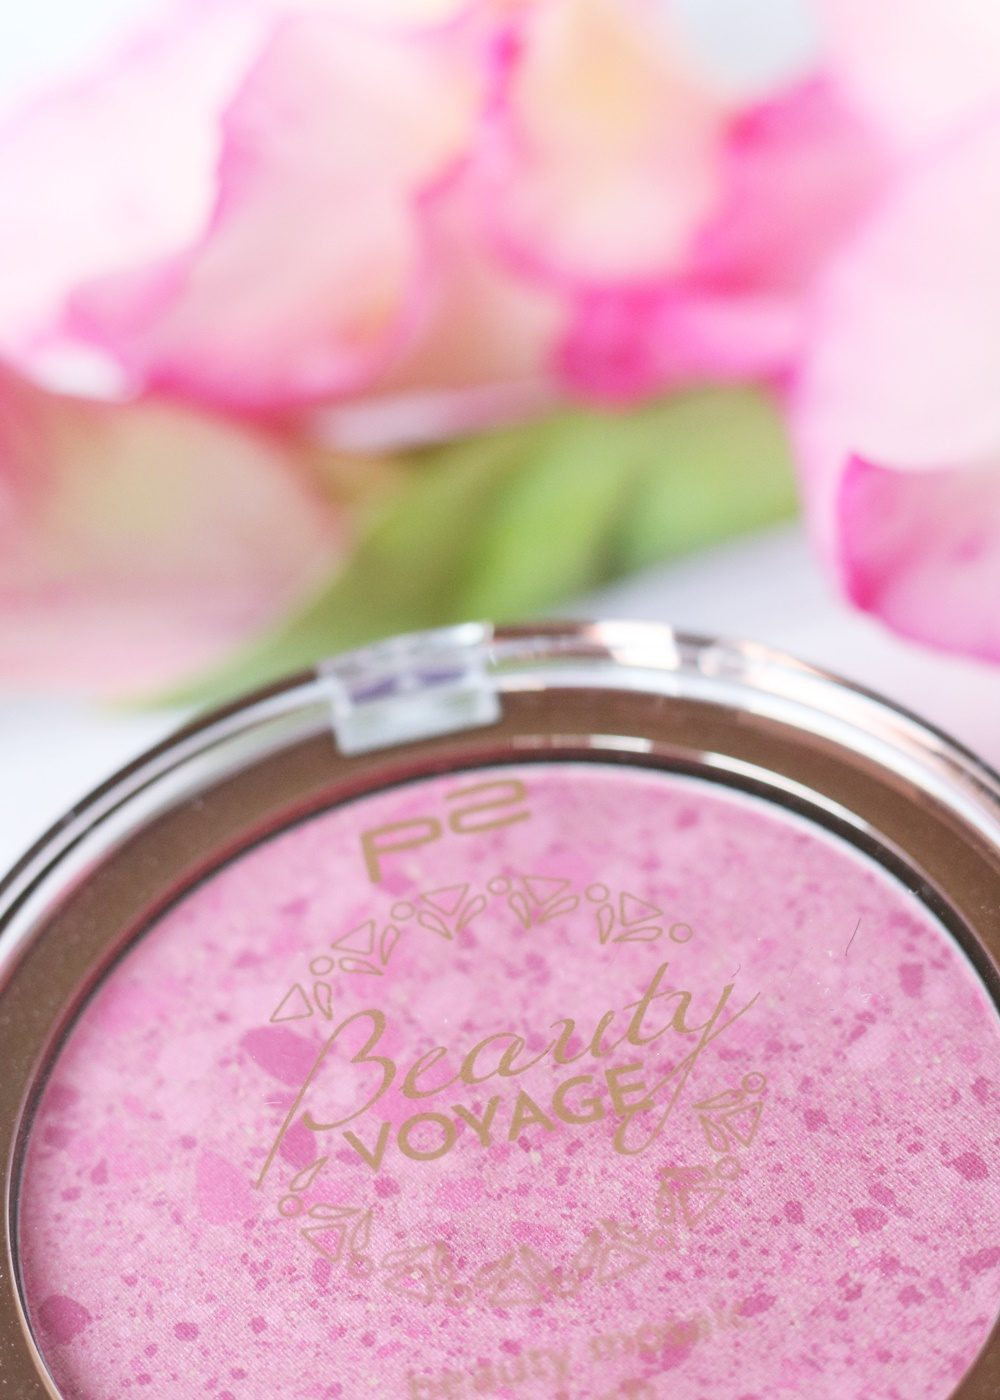 P2 Limited Edition Beauty Voyage Blush (1)